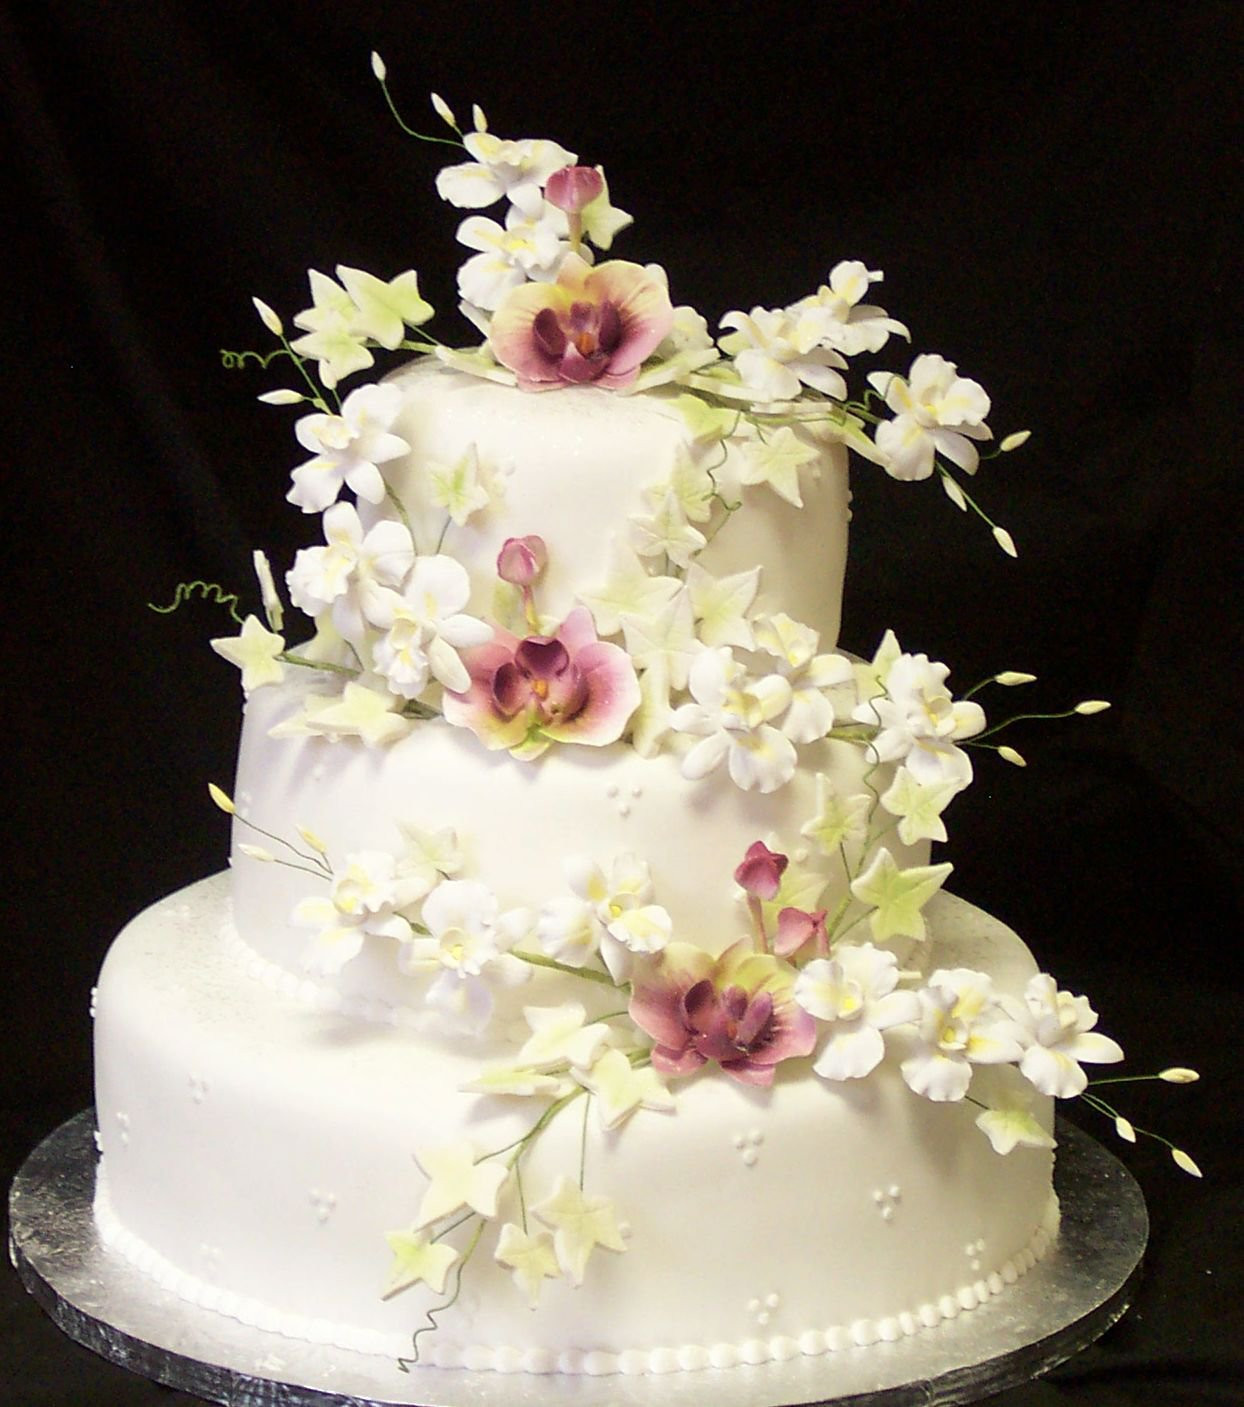 Gumpaste Flowers For Wedding Cakes  Gum paste flowers for wedding cakes idea in 2017